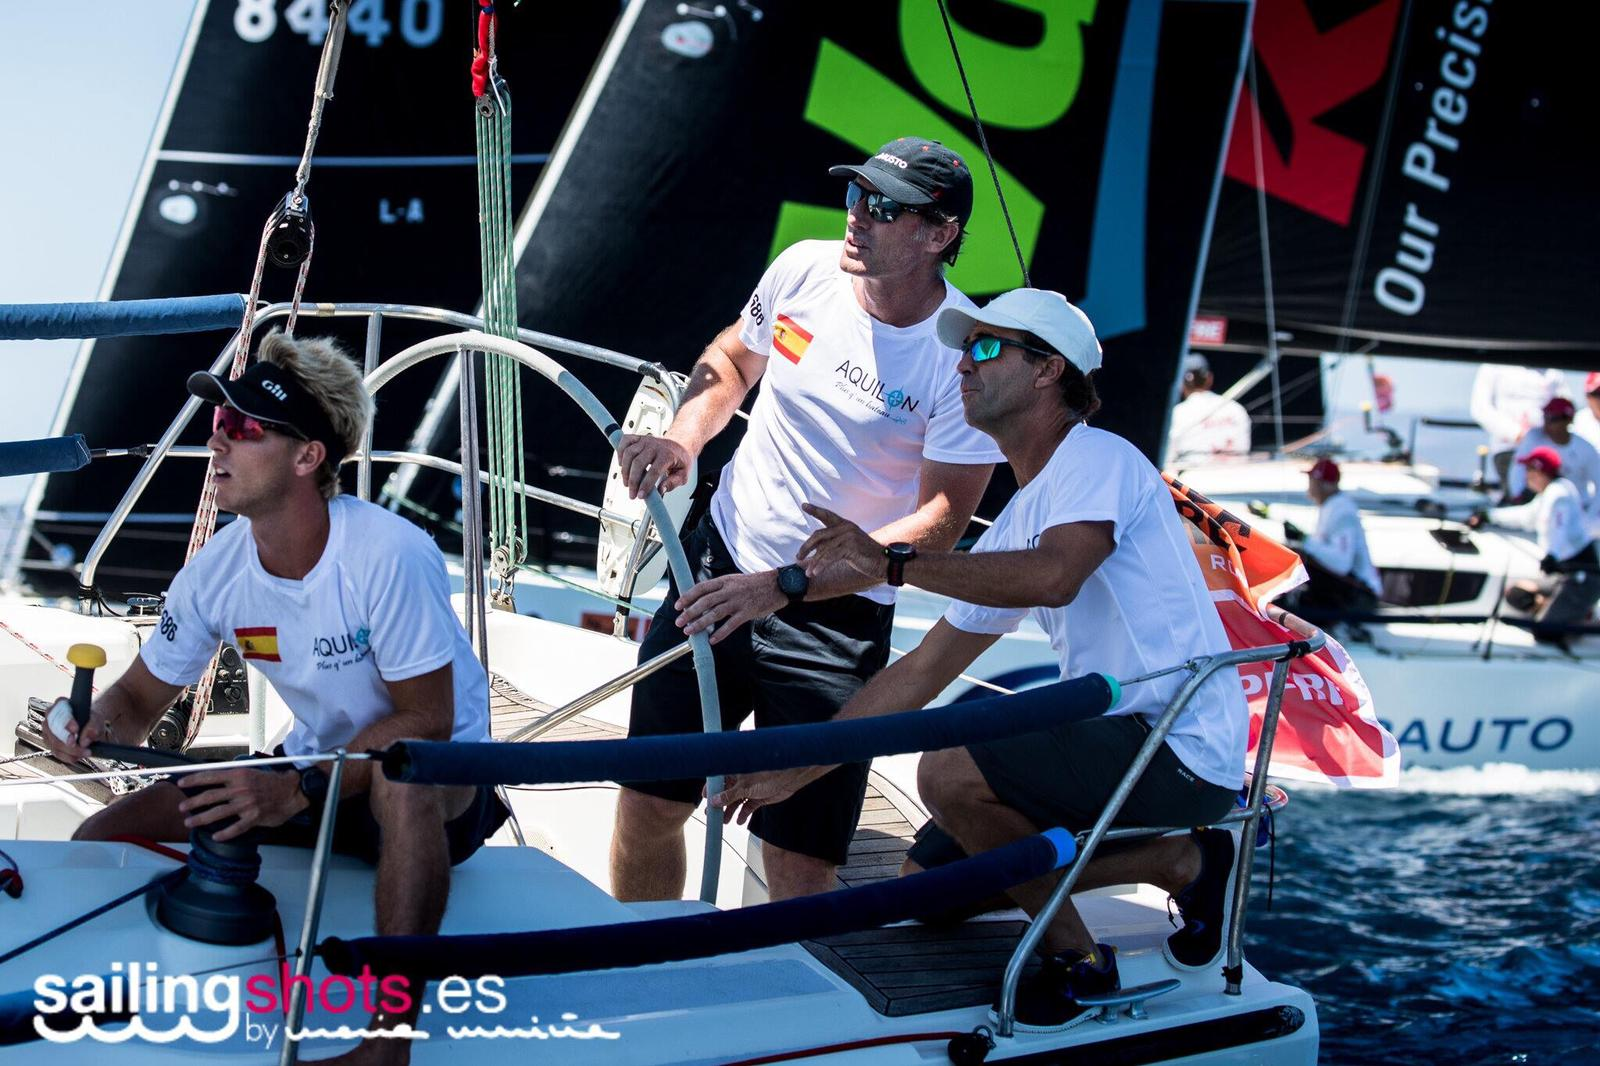 CORPORATE SAILING – REGATAS DE EMPRESA